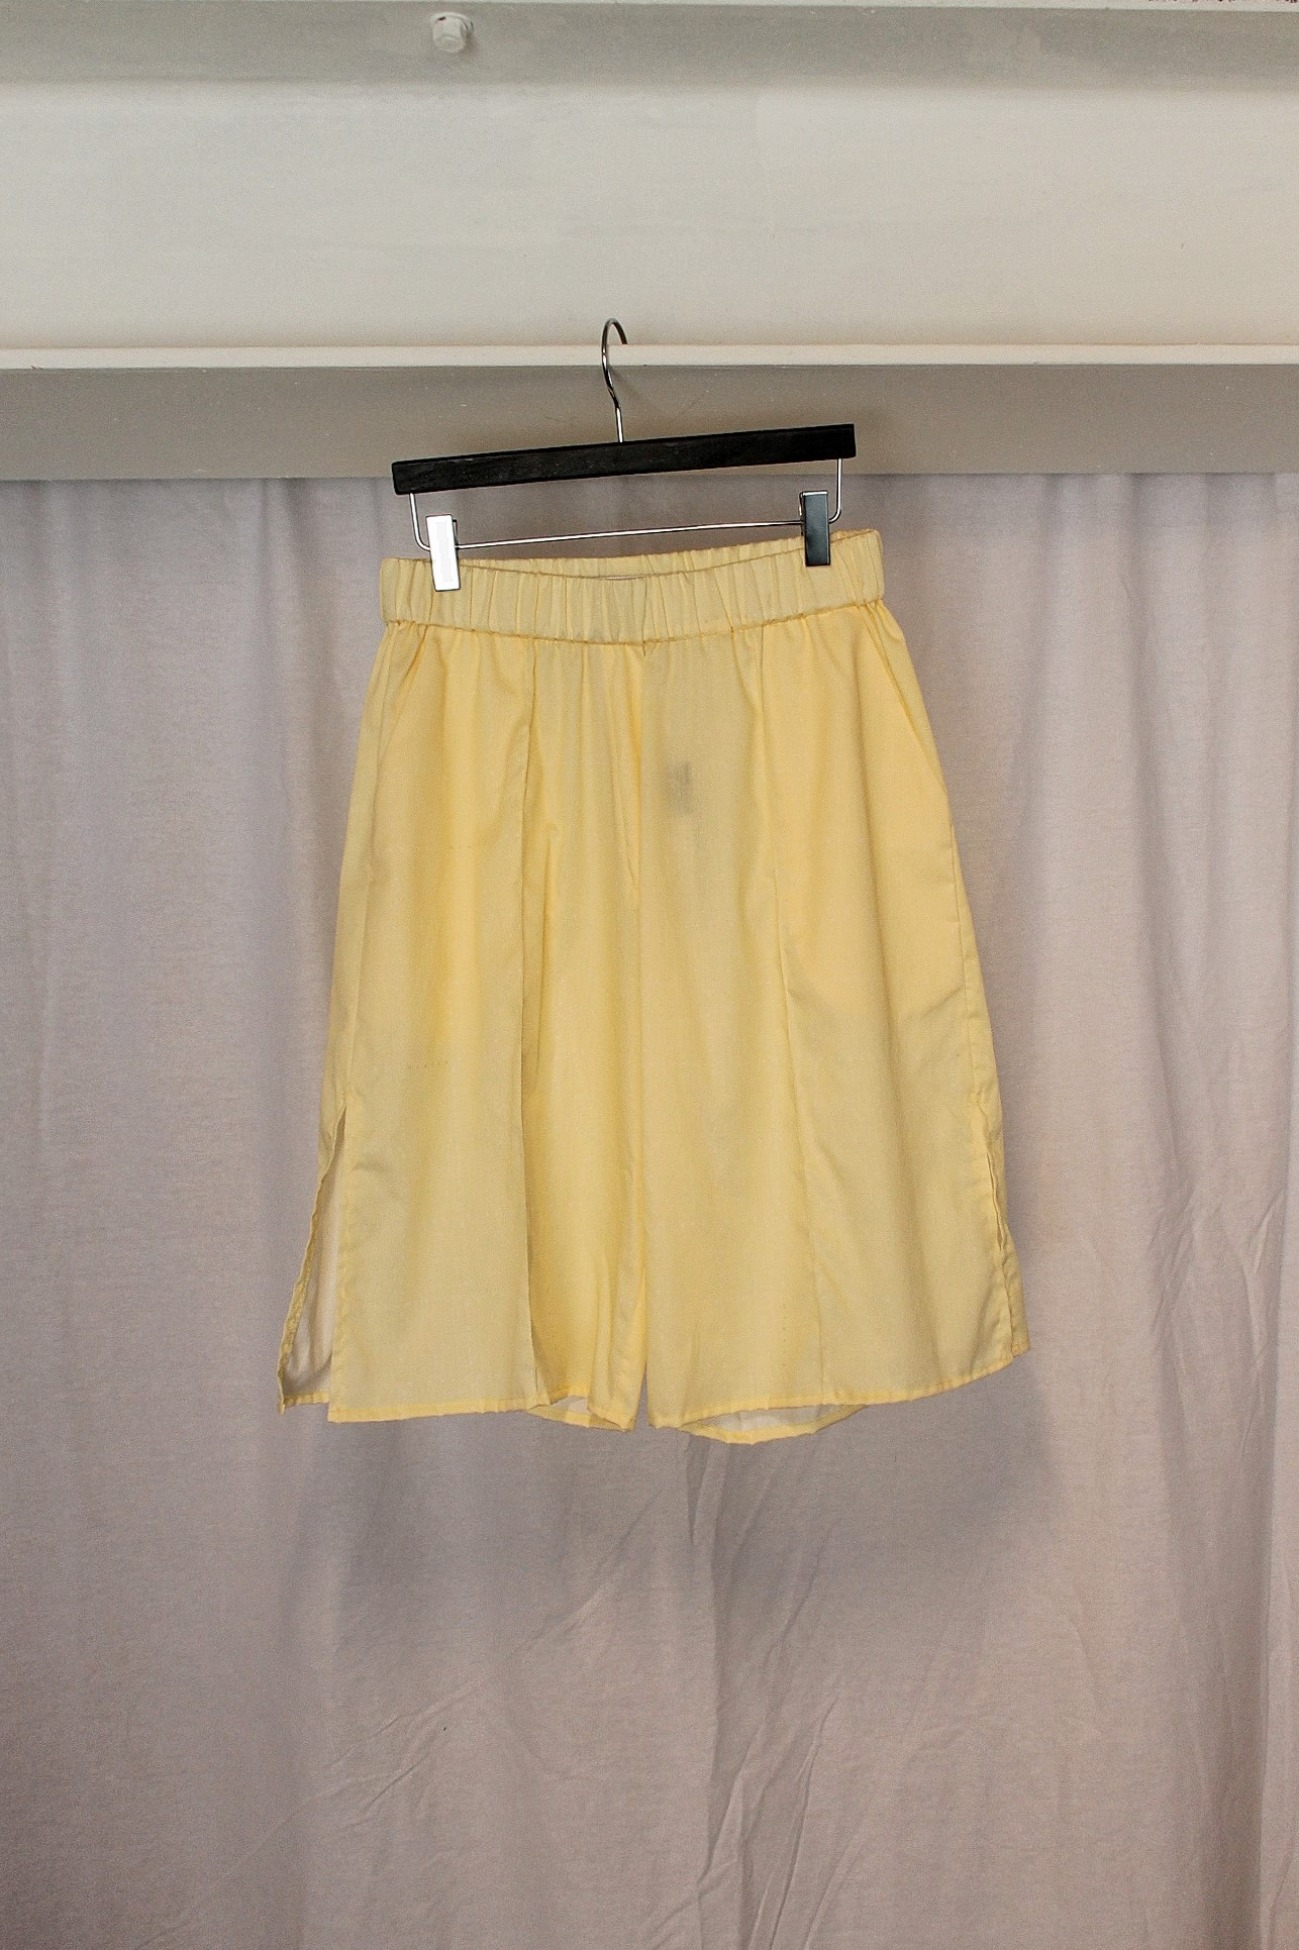 [Hien Le] Sina Shorts (Women) - Lemon Print